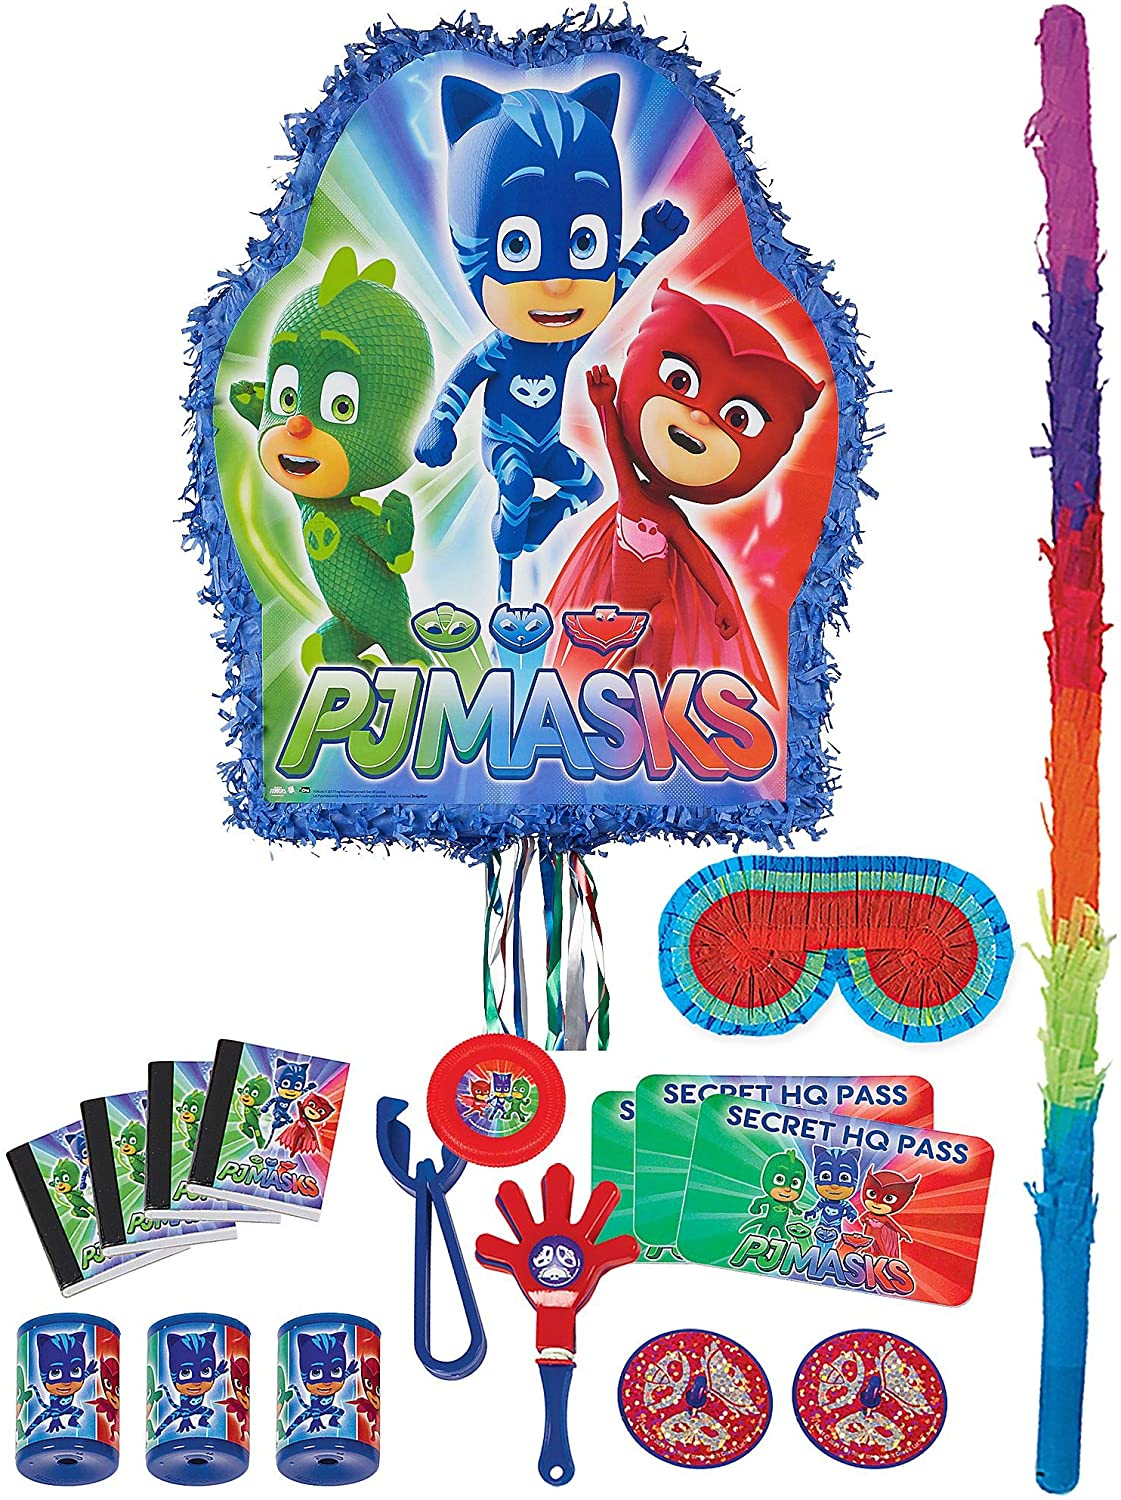 Party City PJ Masks Pull String Pinata Kit, Includes Bat, Blindfold and 48 Piece Favor Pack